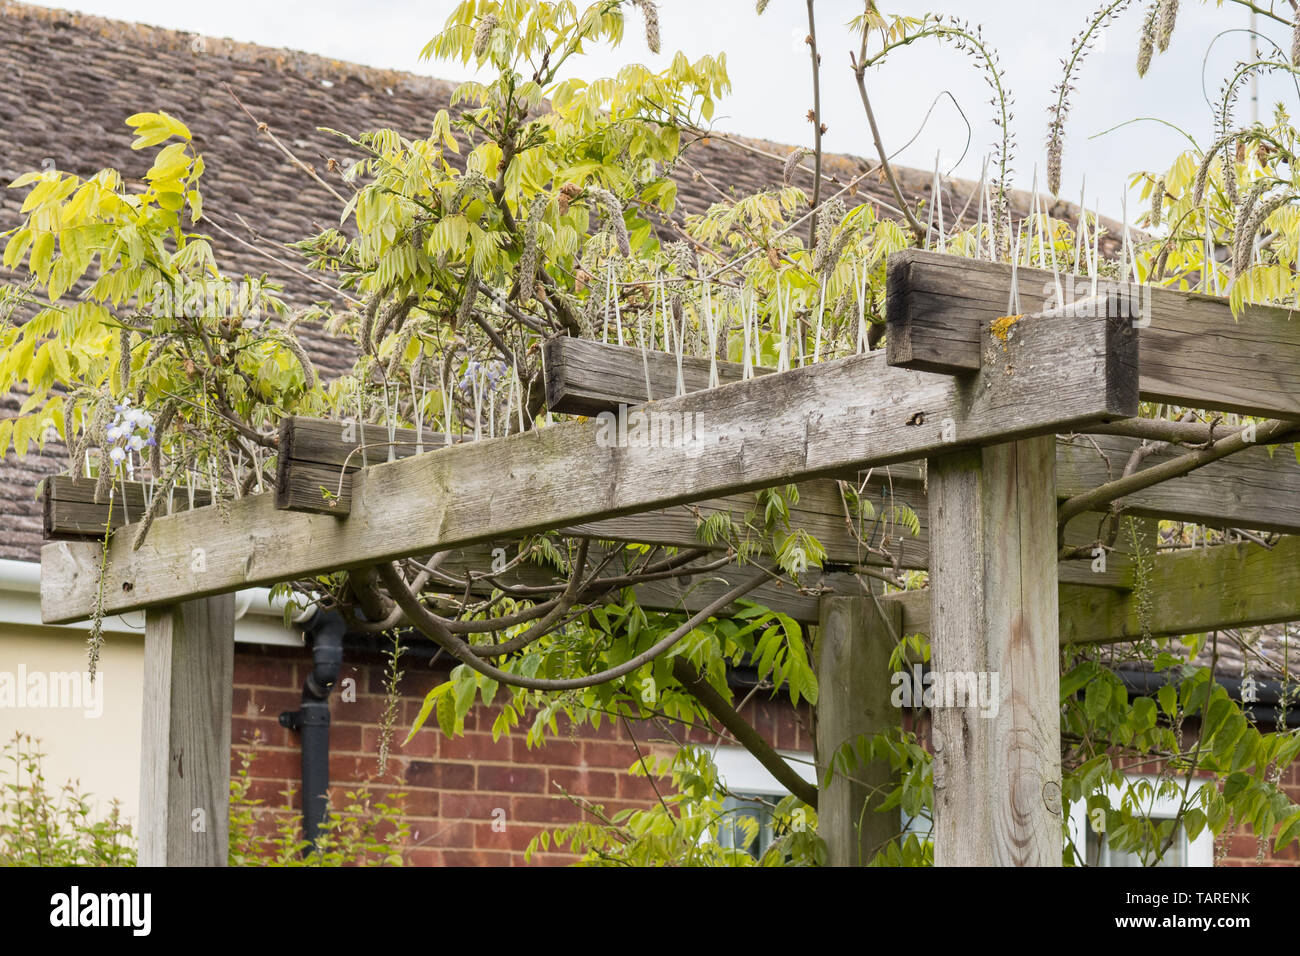 pigeon deterrent - plastic pigeon spikes along the top of pergola or arbor arbour to prevent large birds from sitting on top to reduce bird droppings - Stock Image